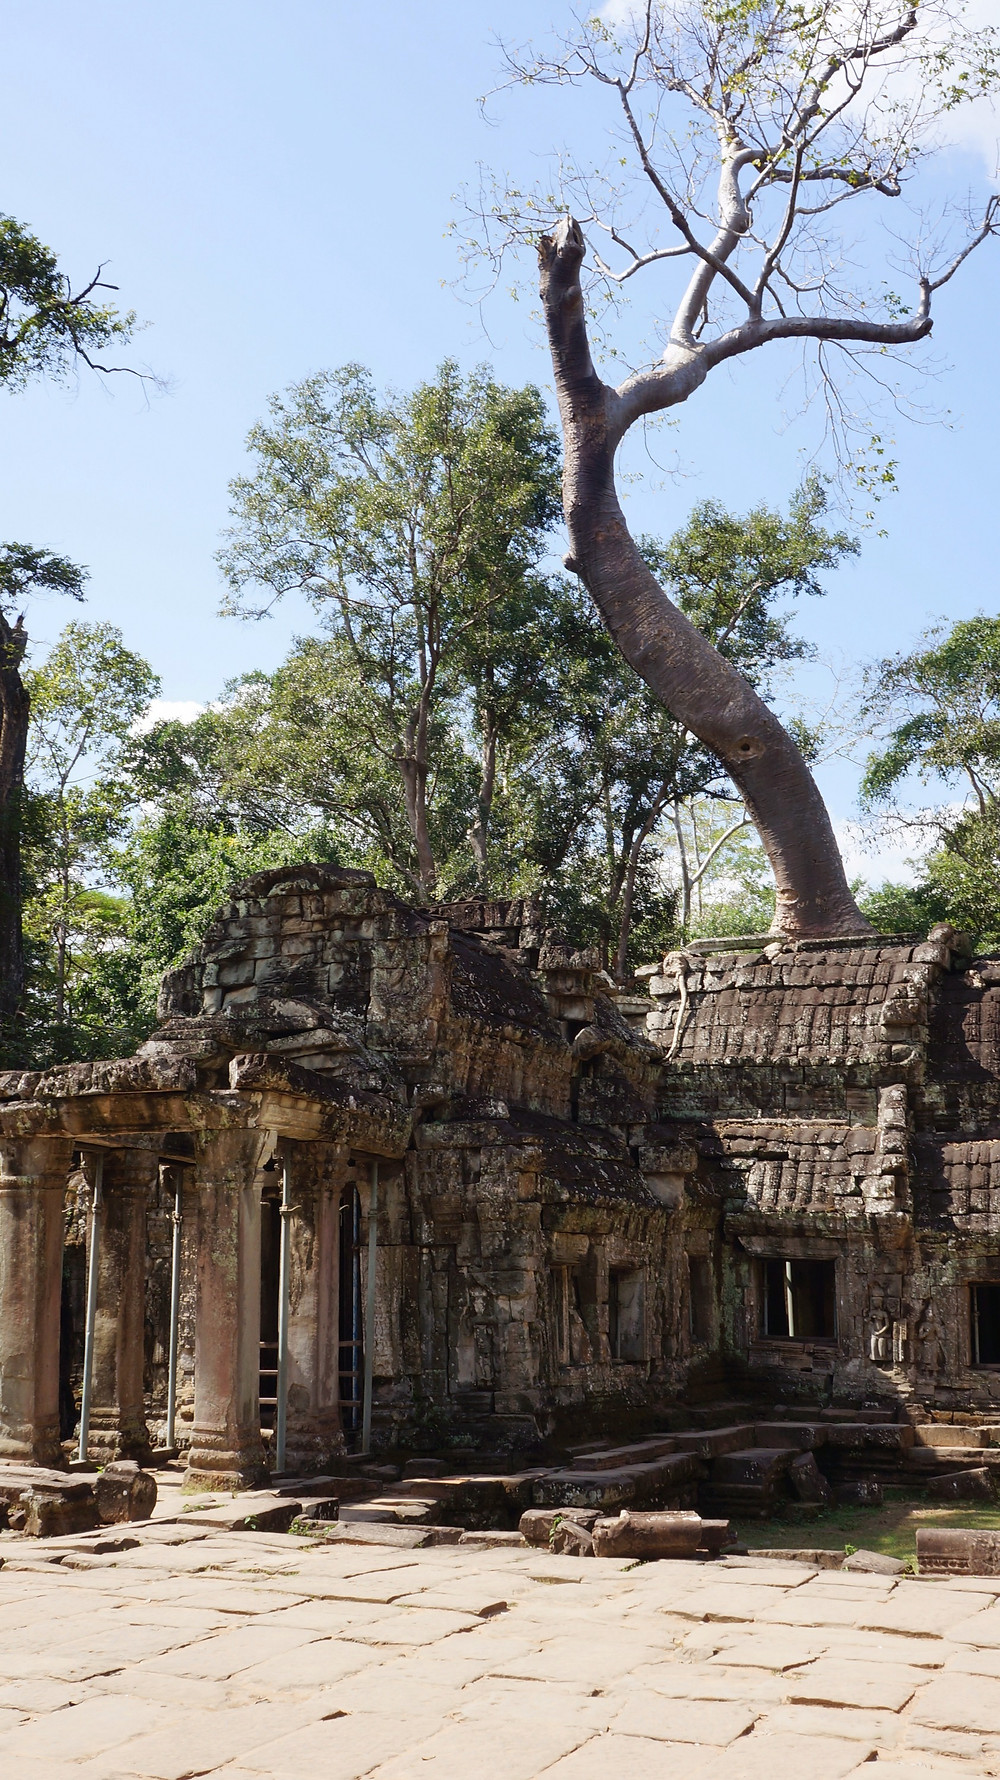 Check out the ruins of Ta Prohm within Angkor Archaeological Park